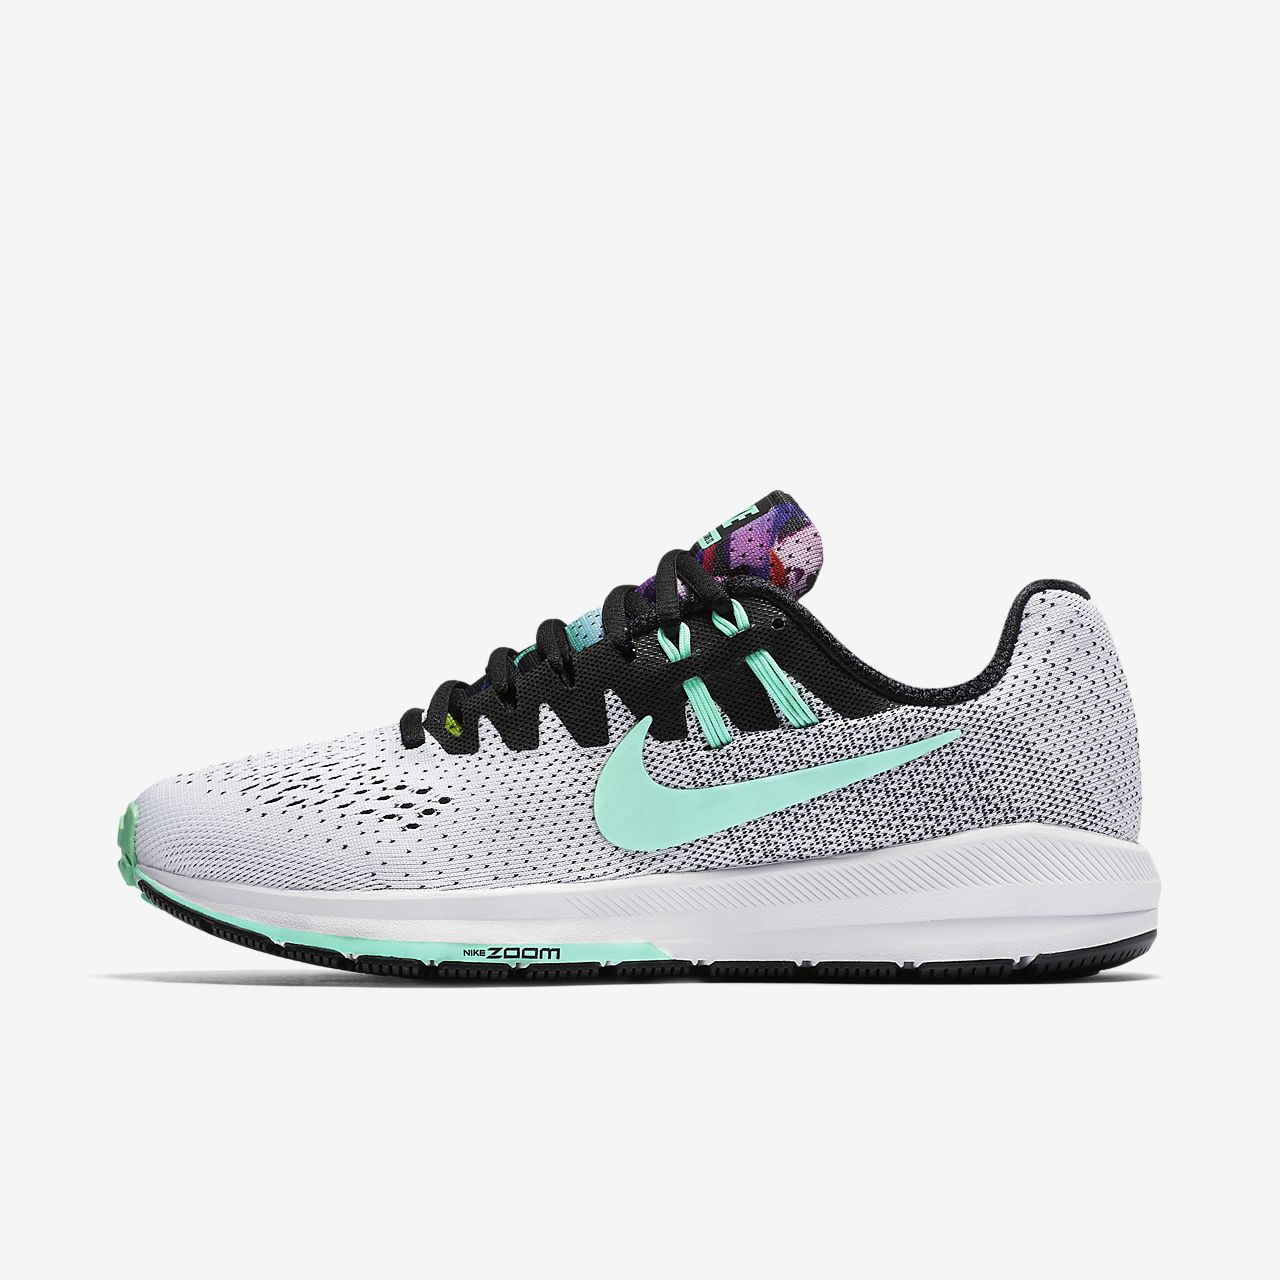 ... Nike Air Zoom Structure 20 Solstice Women's Running Shoe